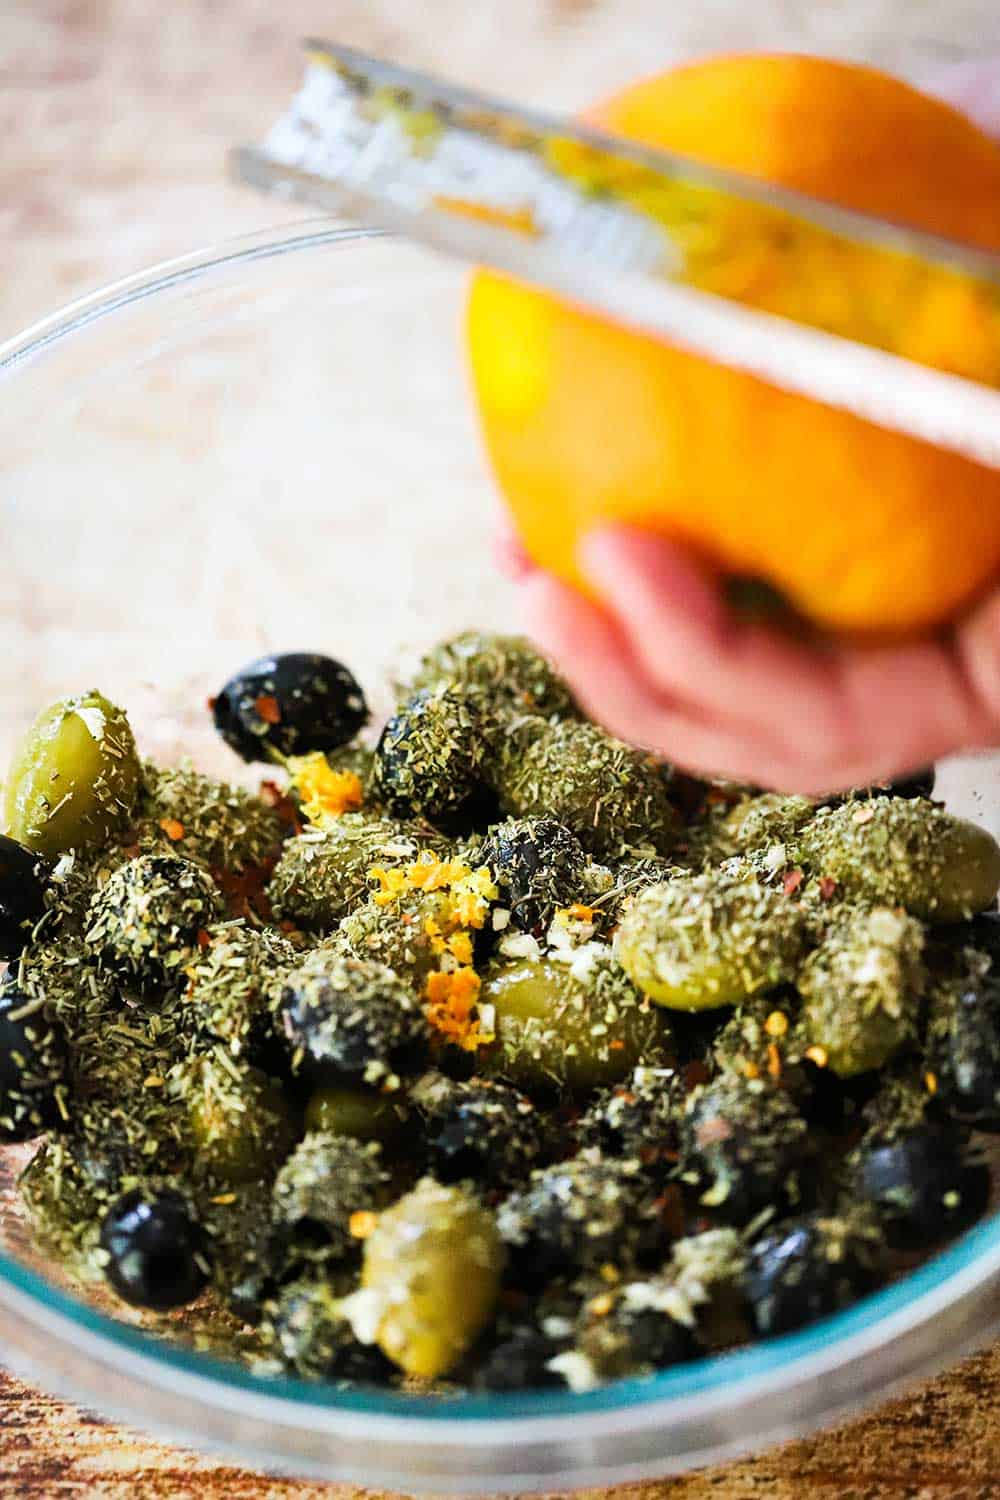 A person using a citrus zester to collect zest from an orange over a bowl of black and green olives topped with dried herbs.